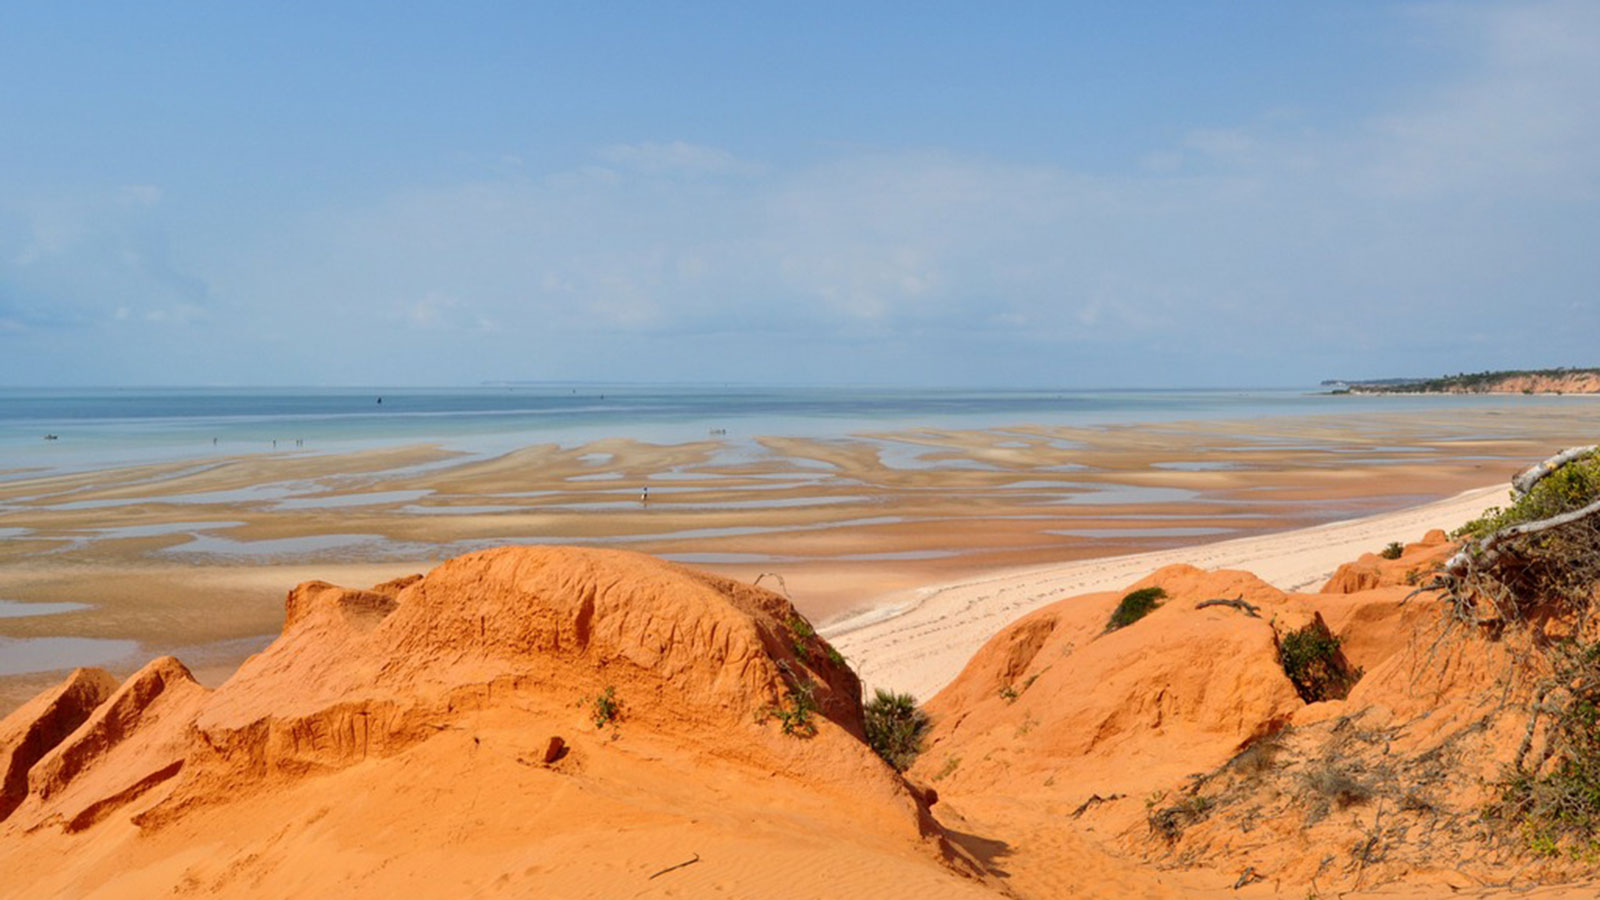 Red Dune Beach - Vilanculos - Moçambique